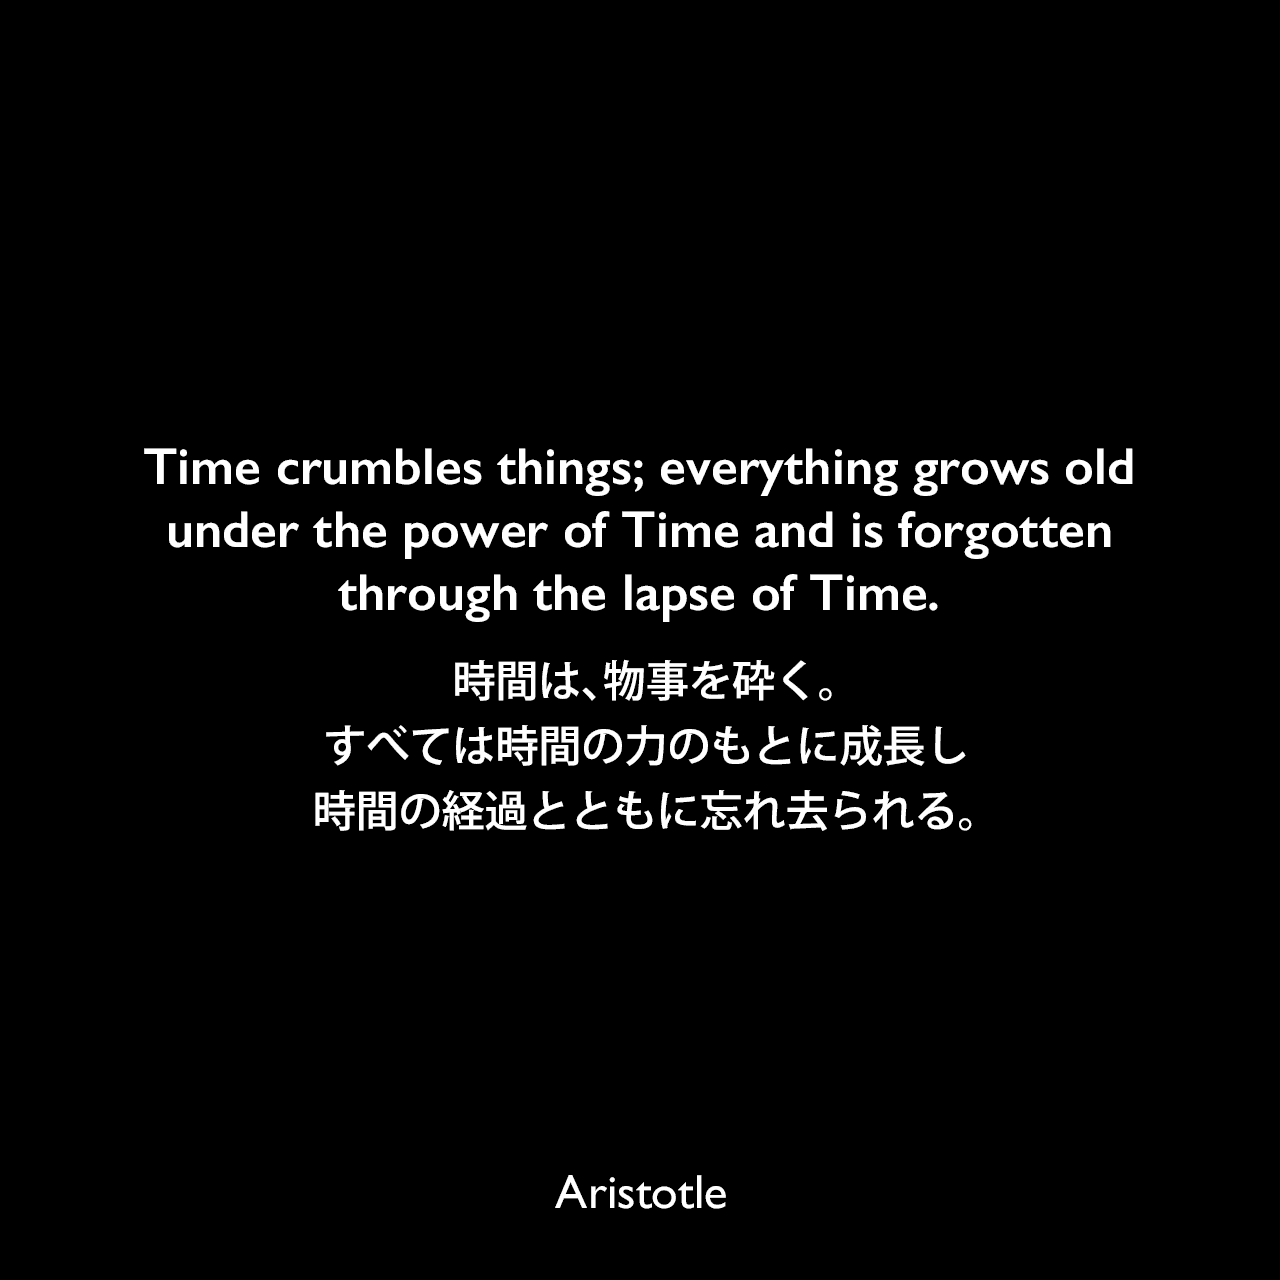 Time crumbles things; everything grows old under the power of Time and is forgotten through the lapse of Time.時間は、物事を砕く。すべては時間の力のもとに成長し、時間の経過とともに忘れ去られる。Aristotle